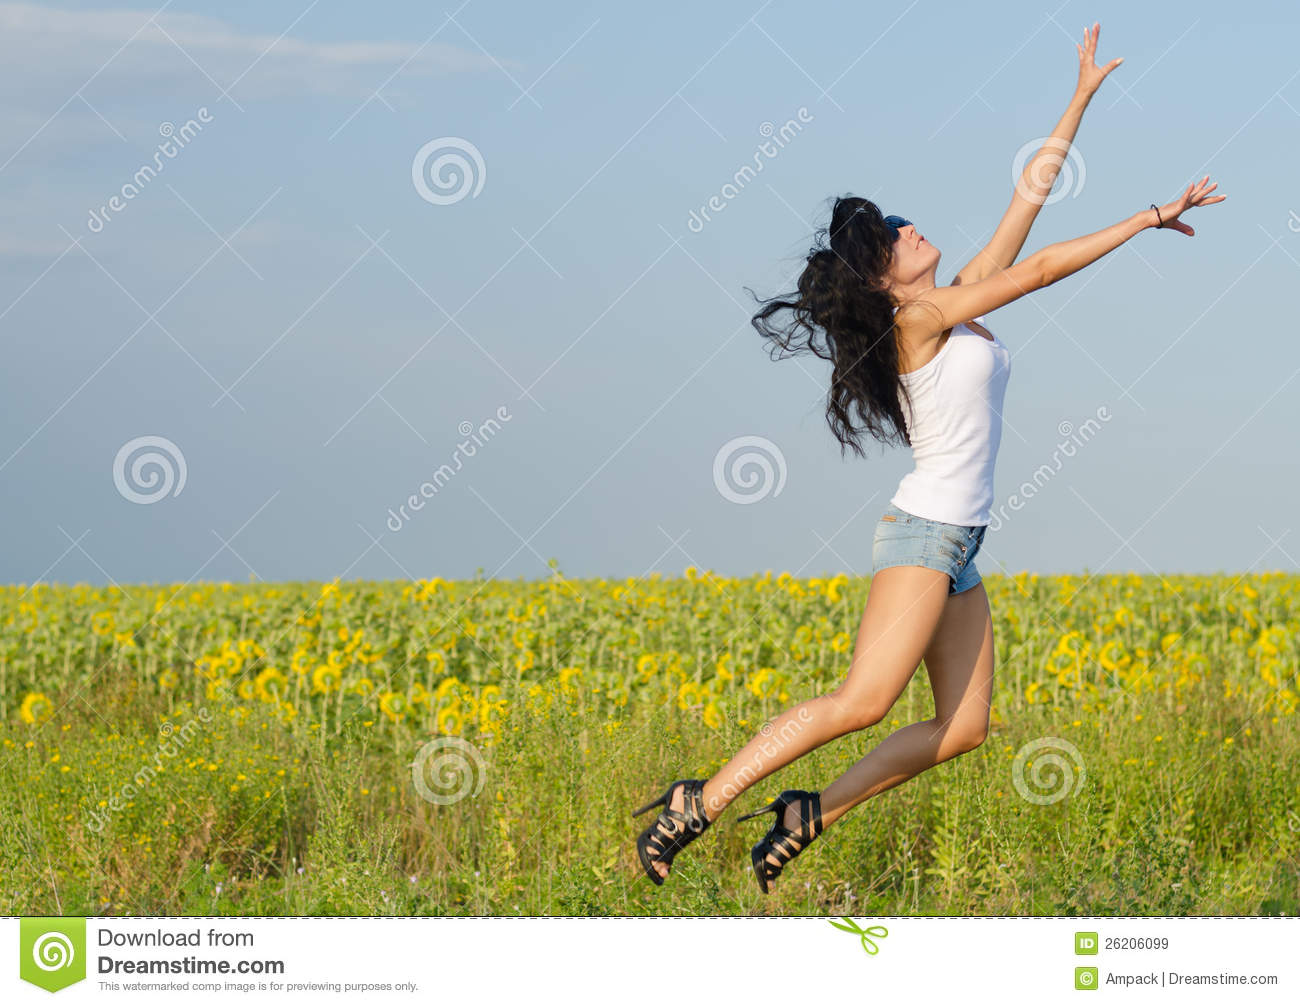 Jumping For Joy Animals Woman Jumping For Joy Cartoon